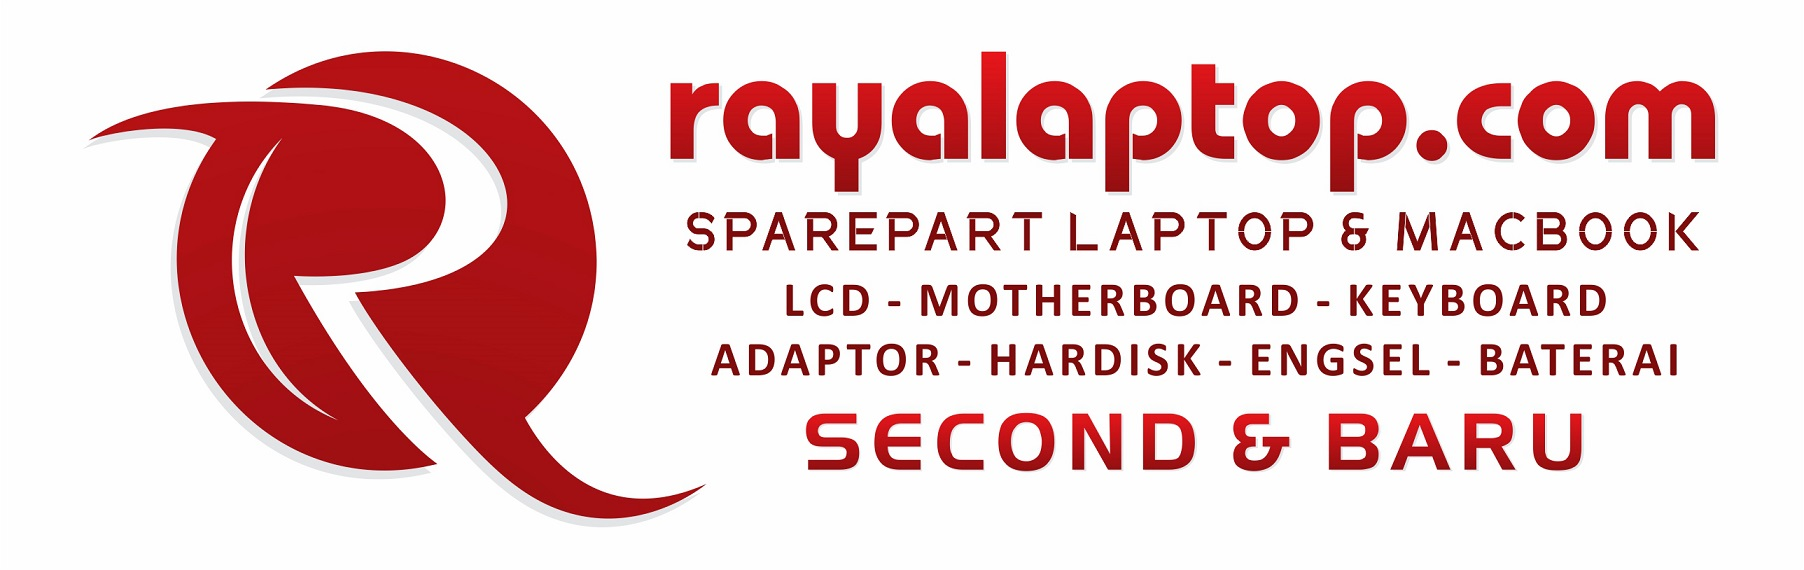 Rayalaptop.com – Jual Sparepart Laptop, MacBook dan Service